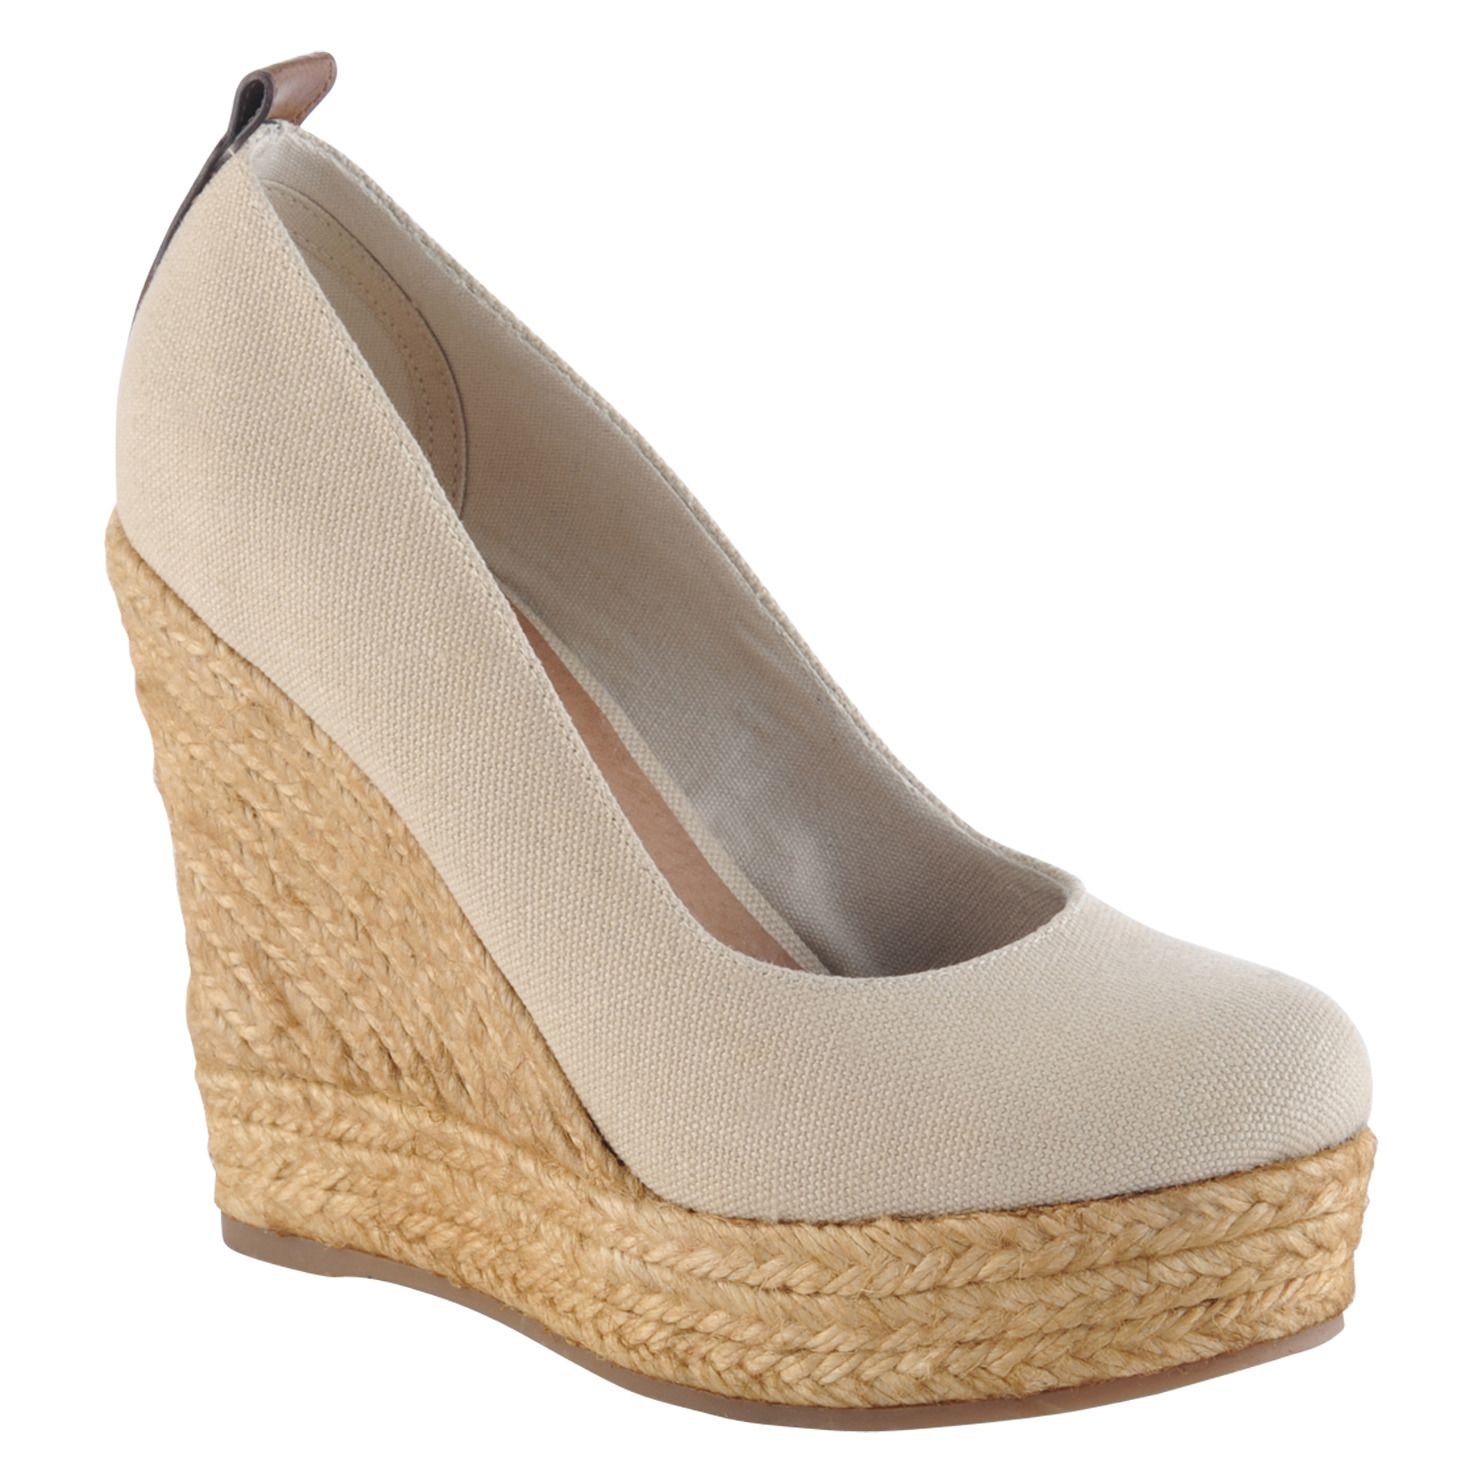 Aldo Wedges | Womens shoes wedges